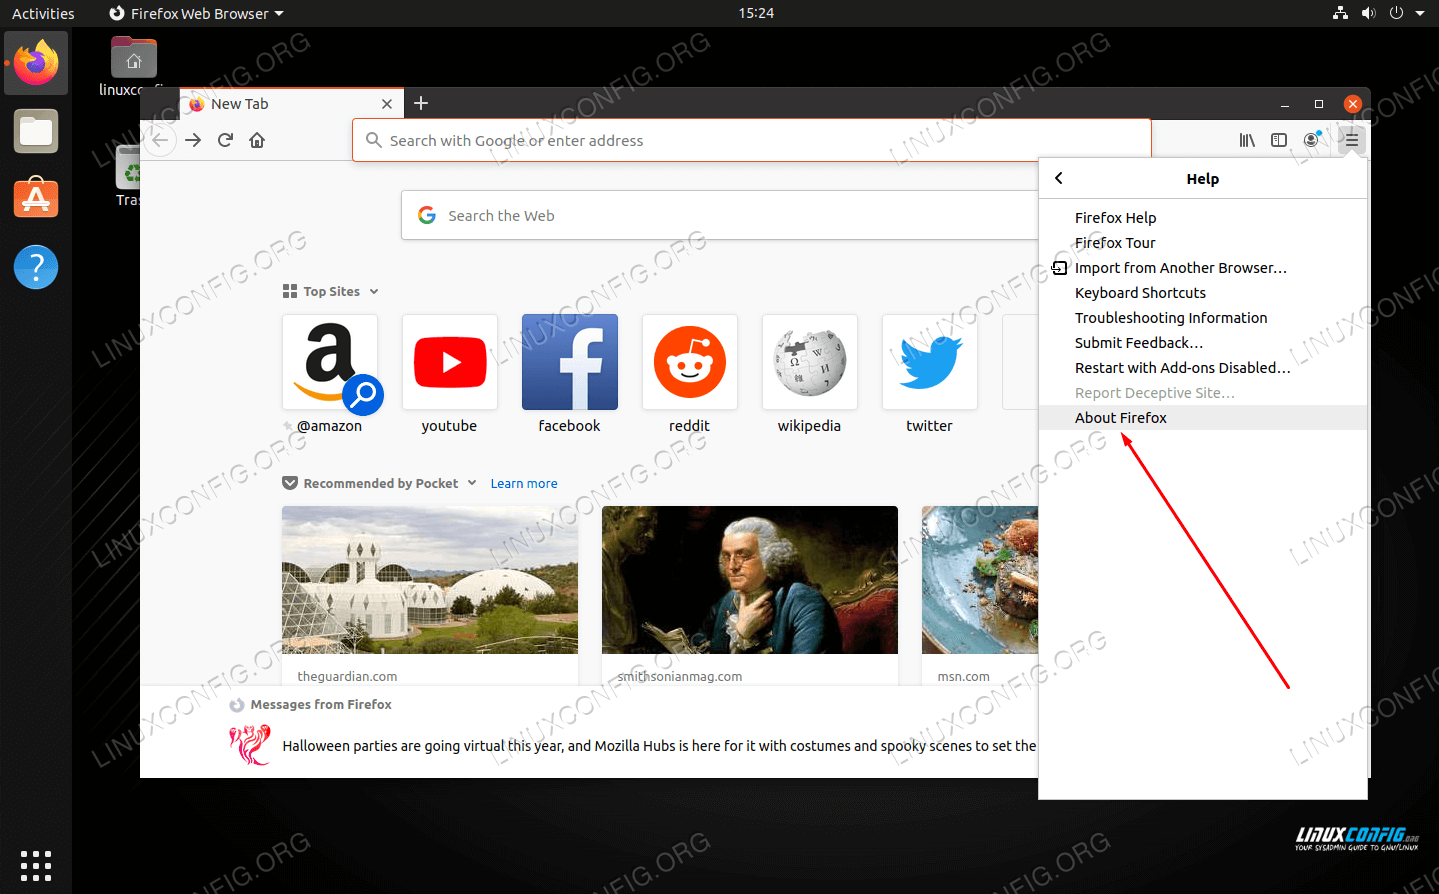 Click About Firefox